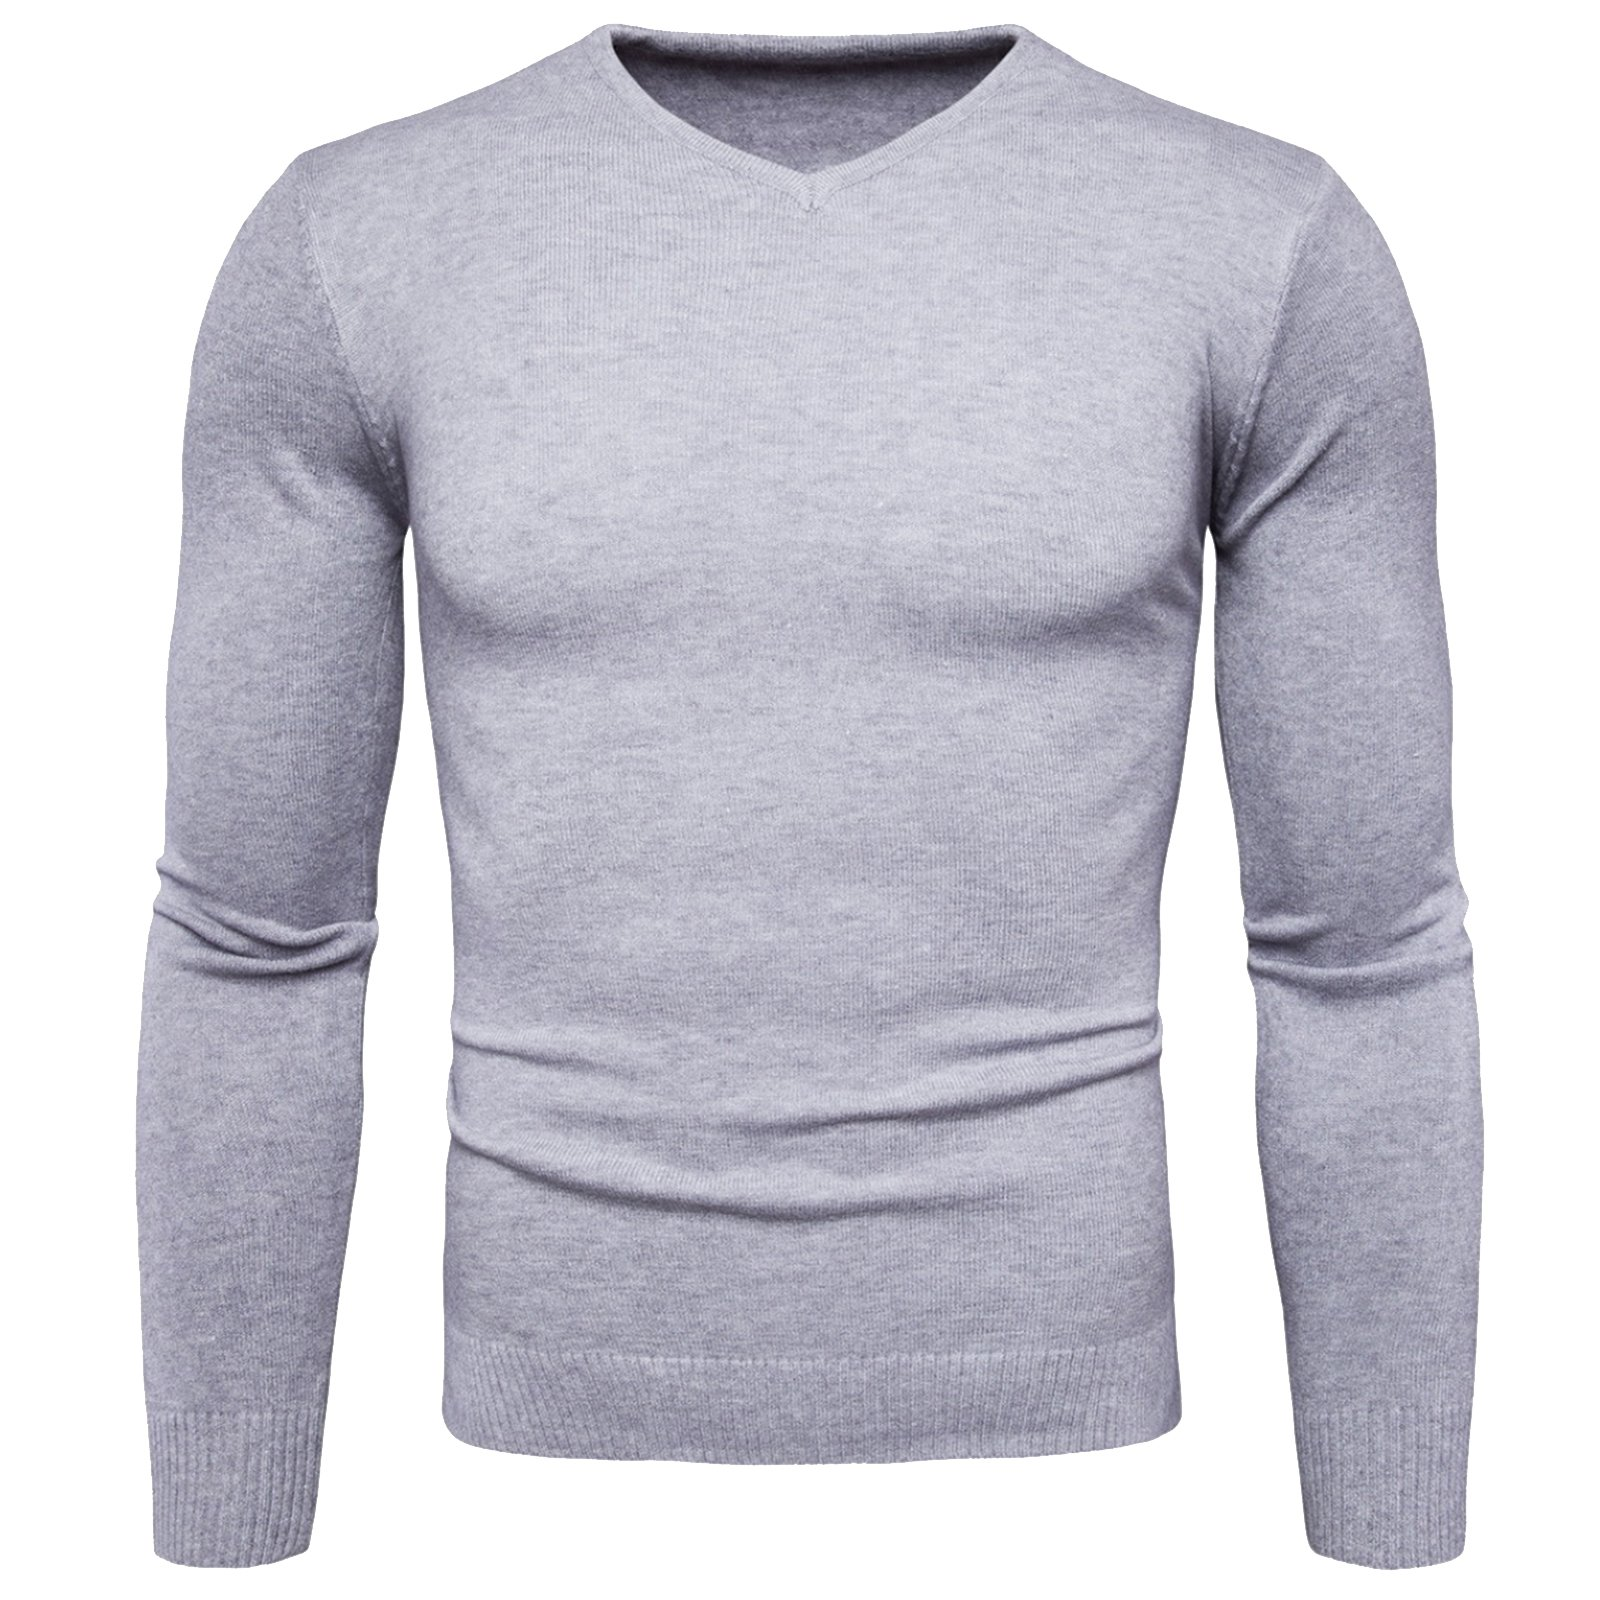 WSLCN Mens Chic Sweater Fine Knit V-Neck Coton Classic Jumper Pullover Solid Grey US XS (Asian M)